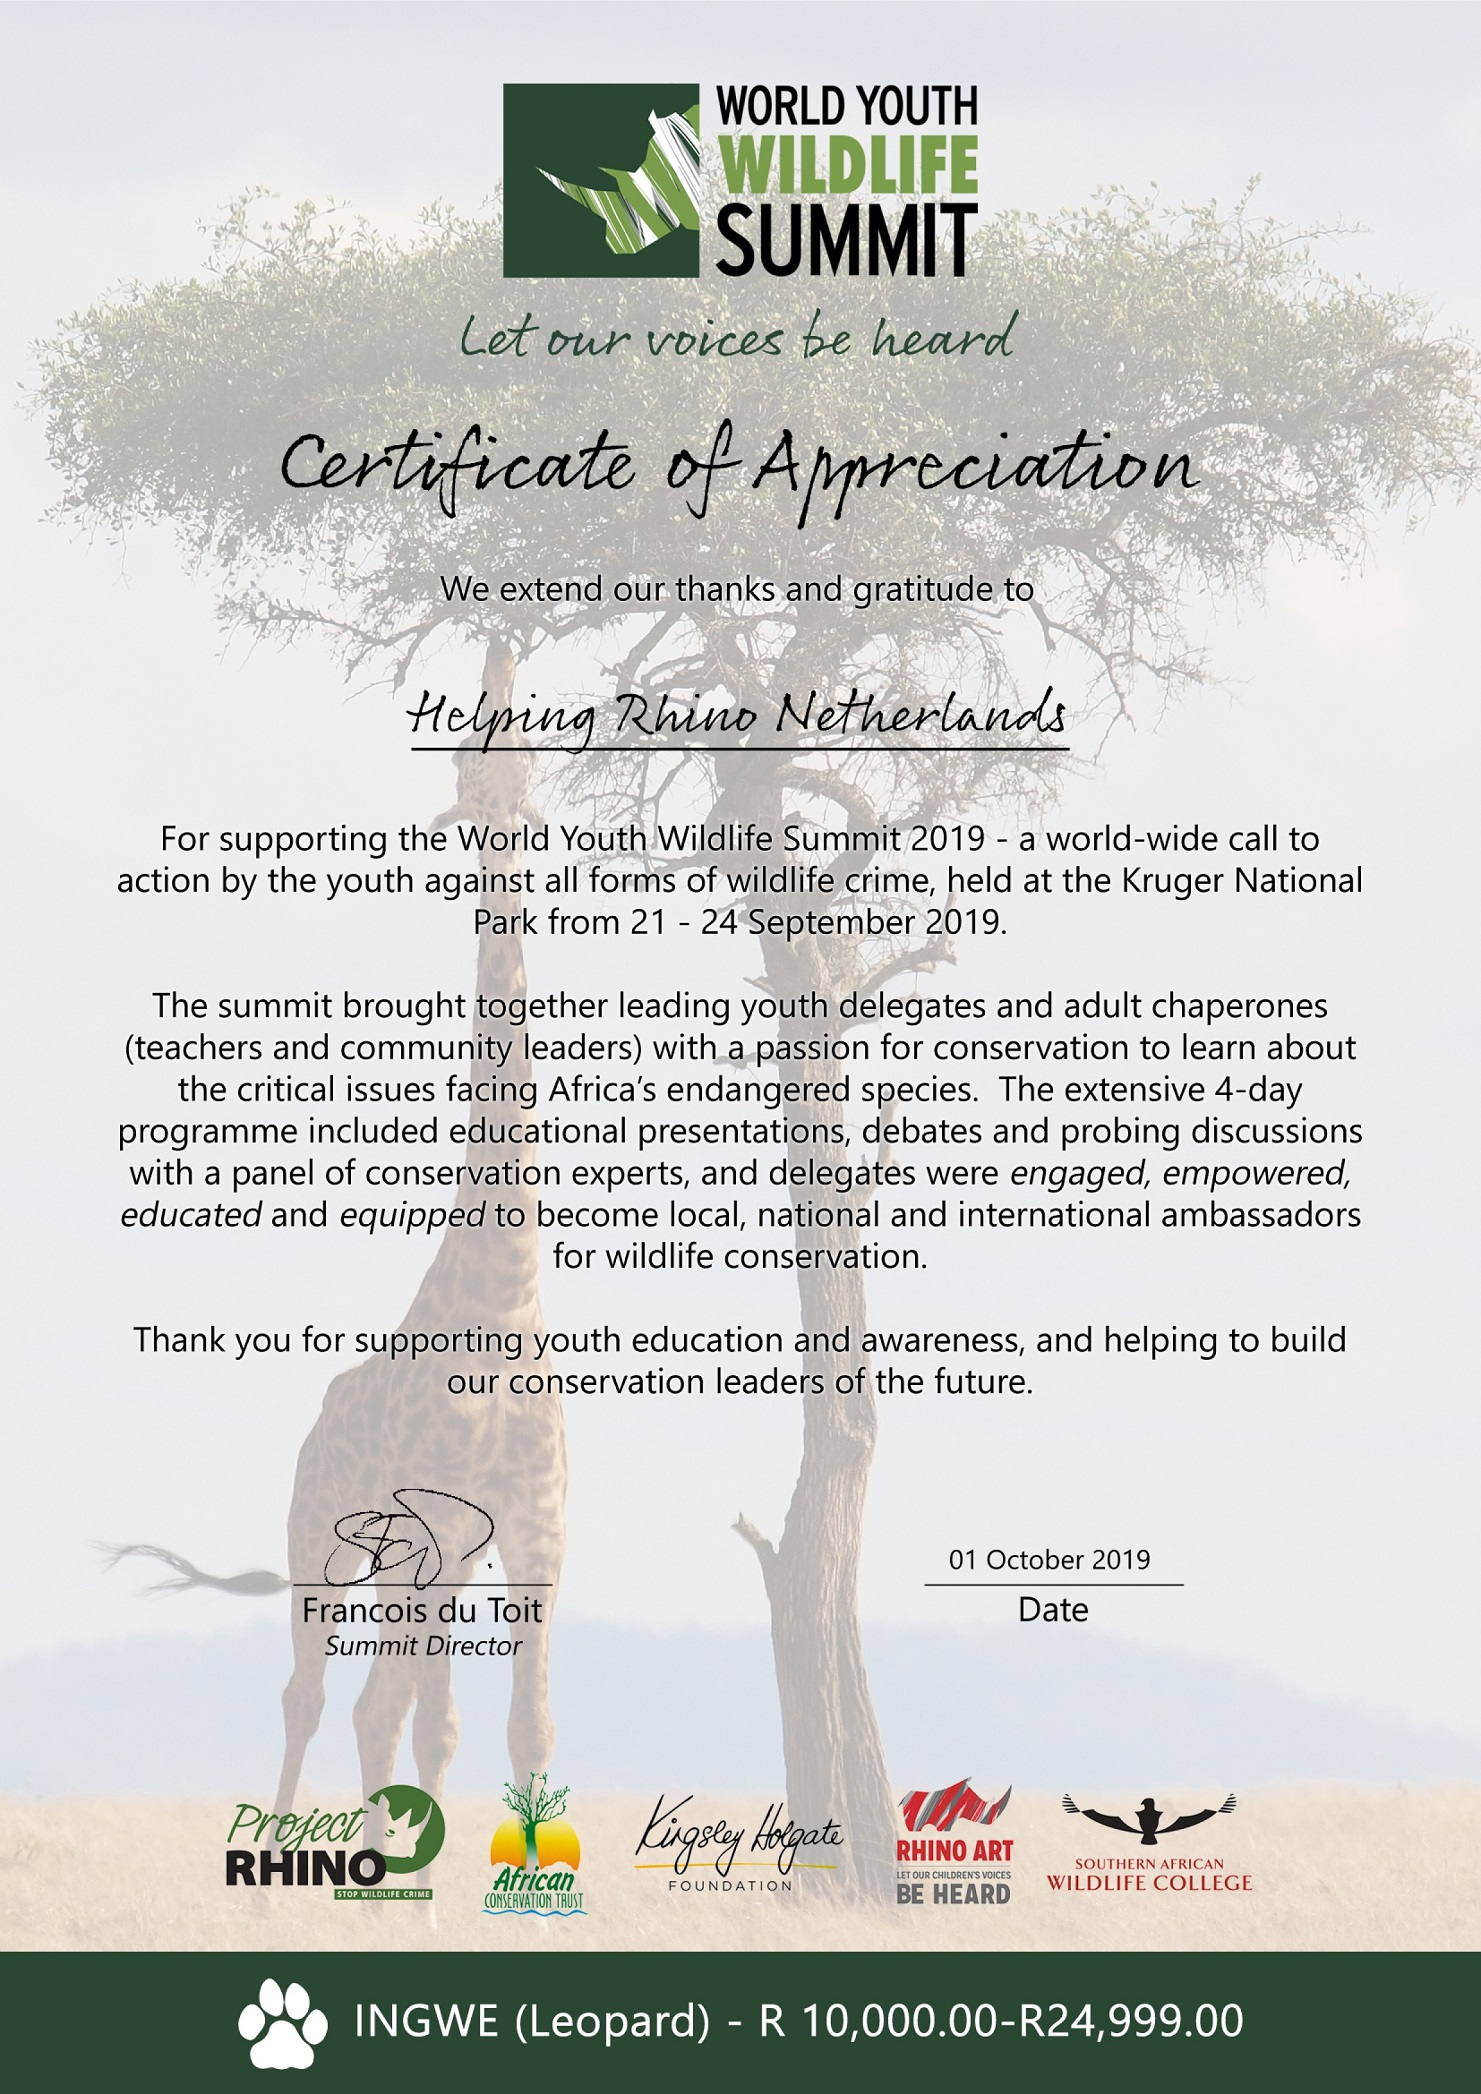 Helping Rhino certificate of thanks